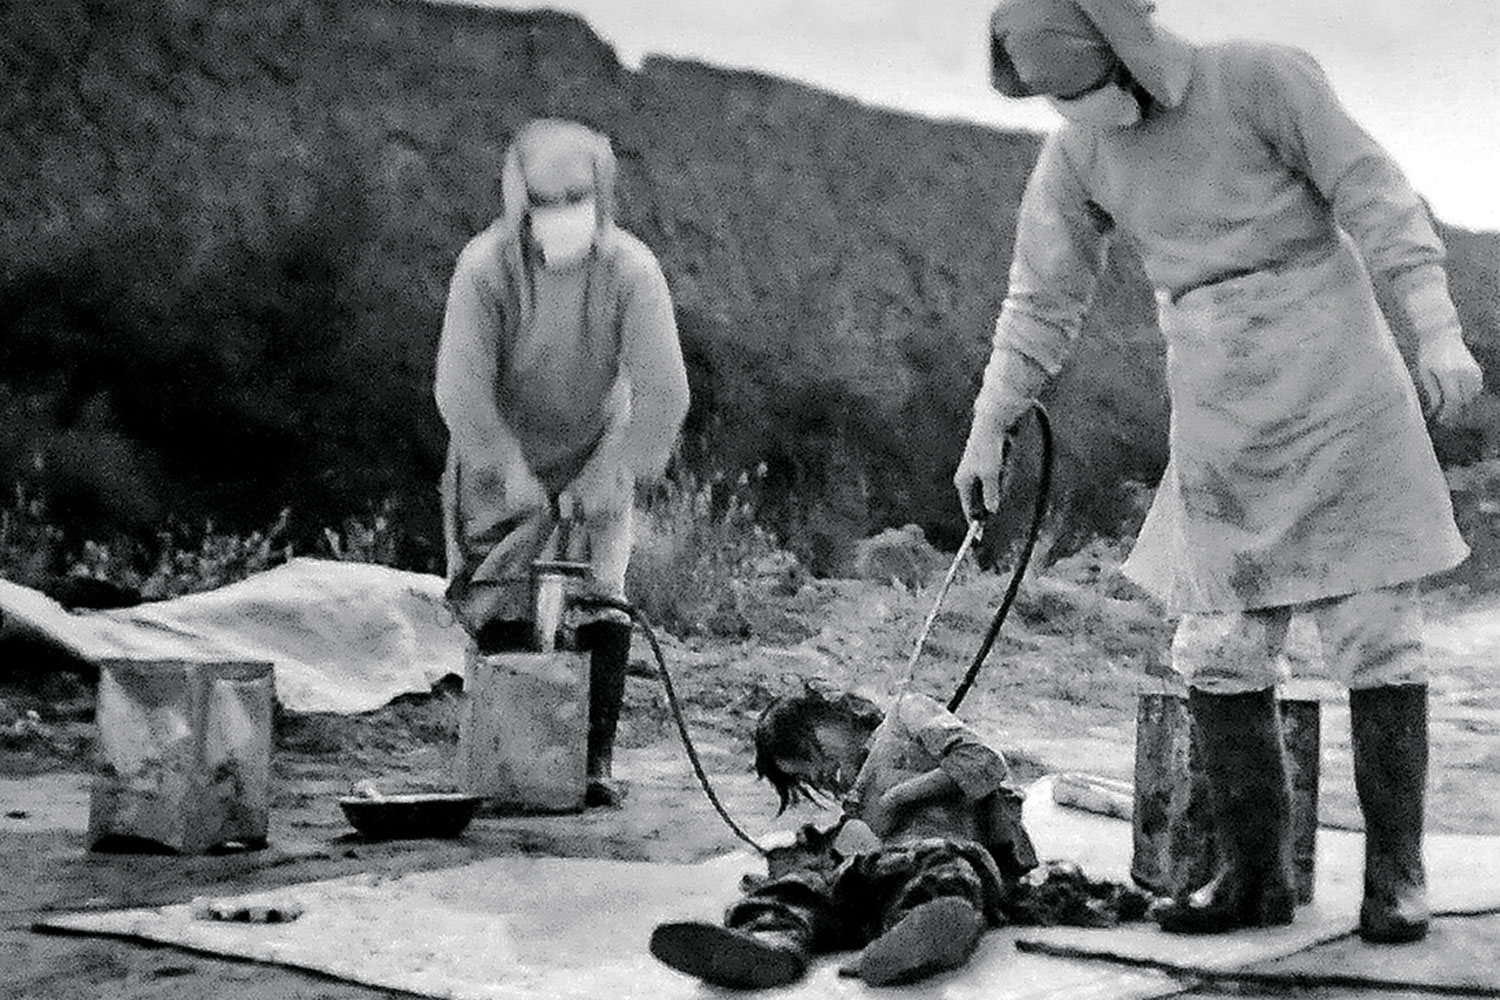 U.S. authorities granted Unit 731 officials immunity from prosecution in return for access to their research.